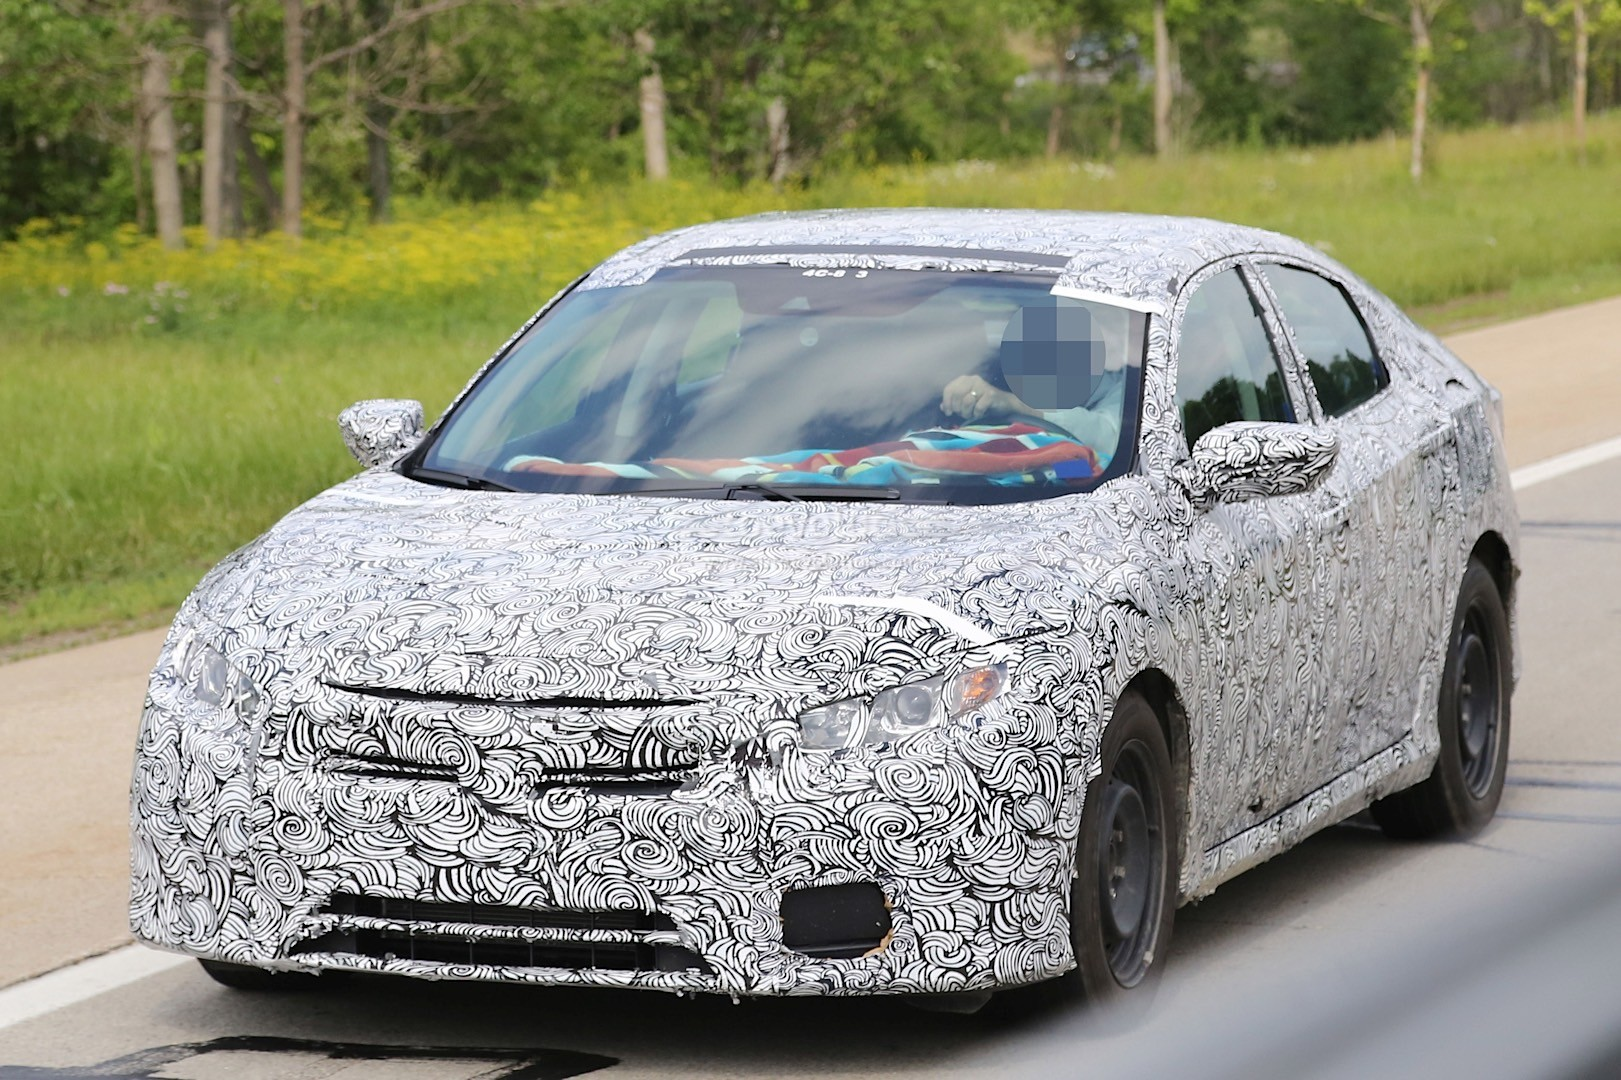 2017 Honda Civic Exposes Interior Styling And 4 Door Coupe